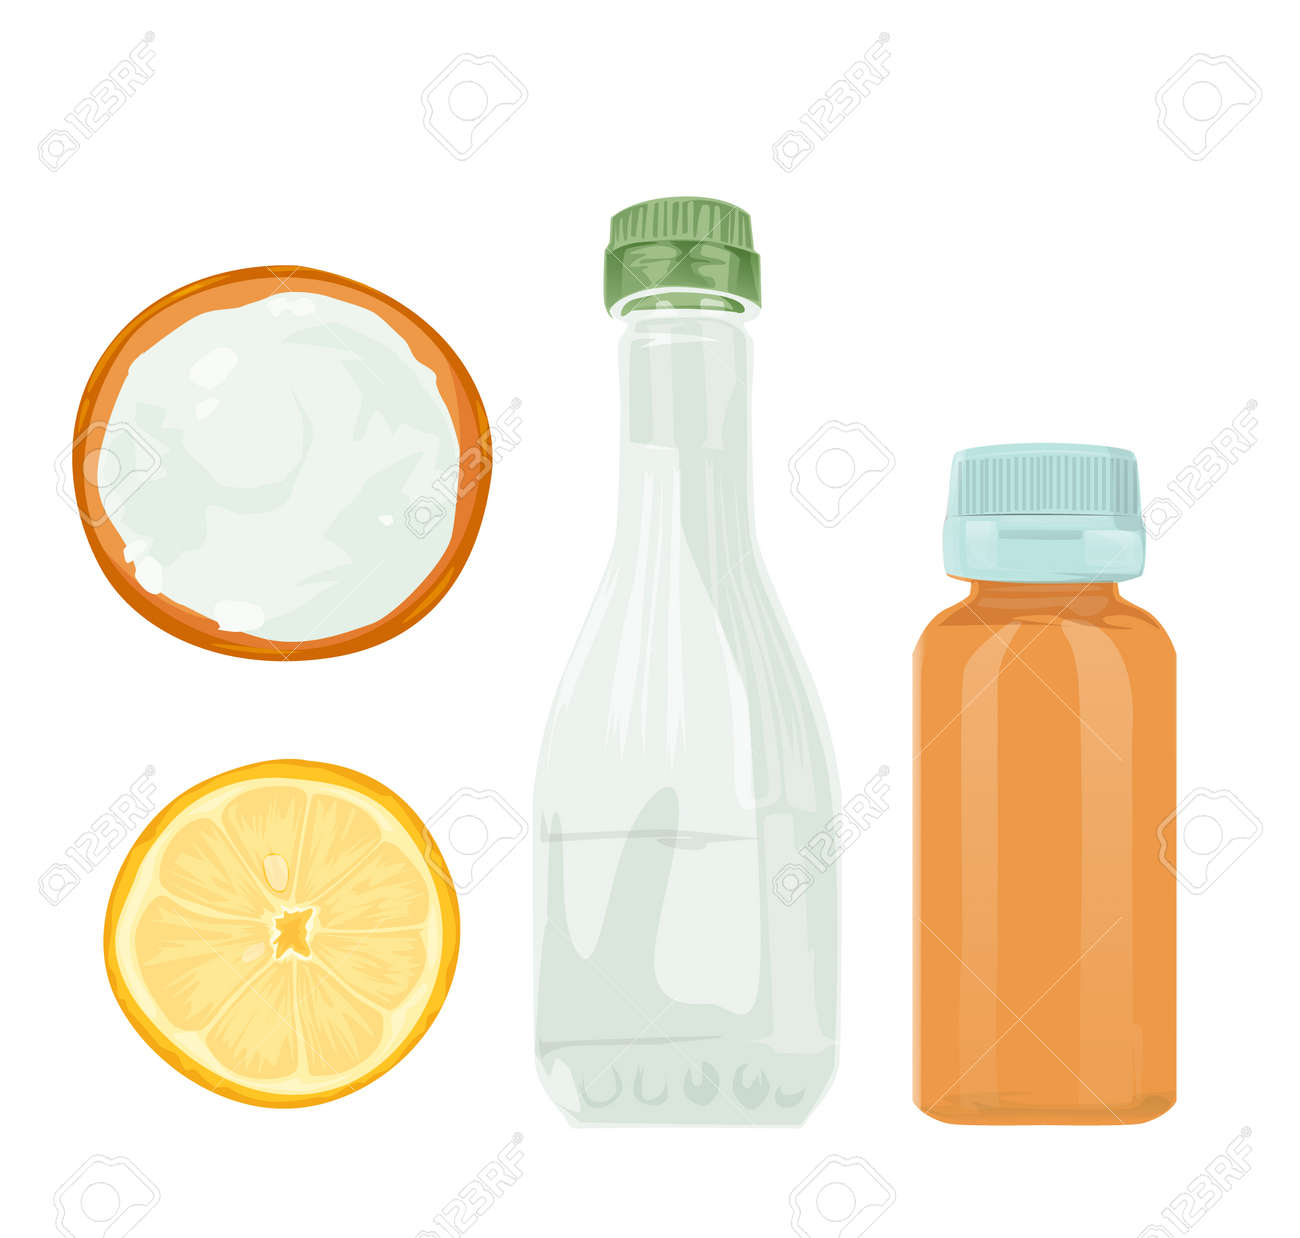 Vector illustration  Natural cleaning products are vinegar, baking